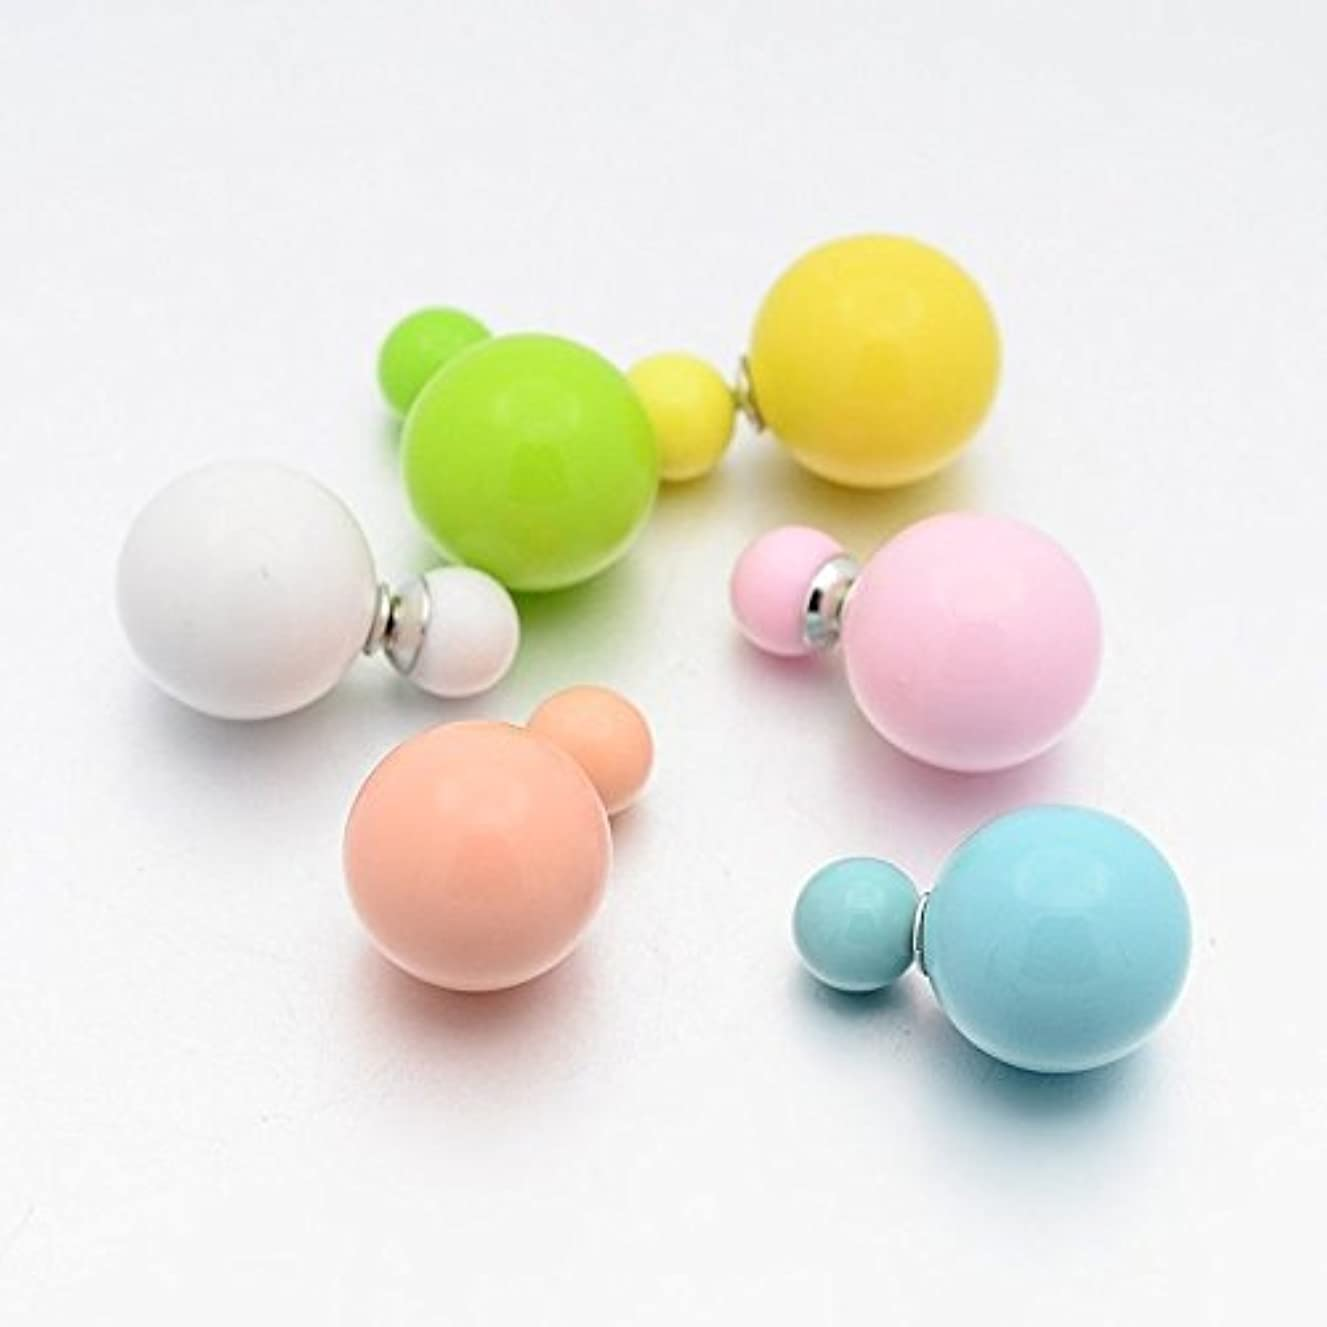 10pairs Opaque Acrylic Double Sided Ball Bubblegum Ear Stud Earrings Mixed Color